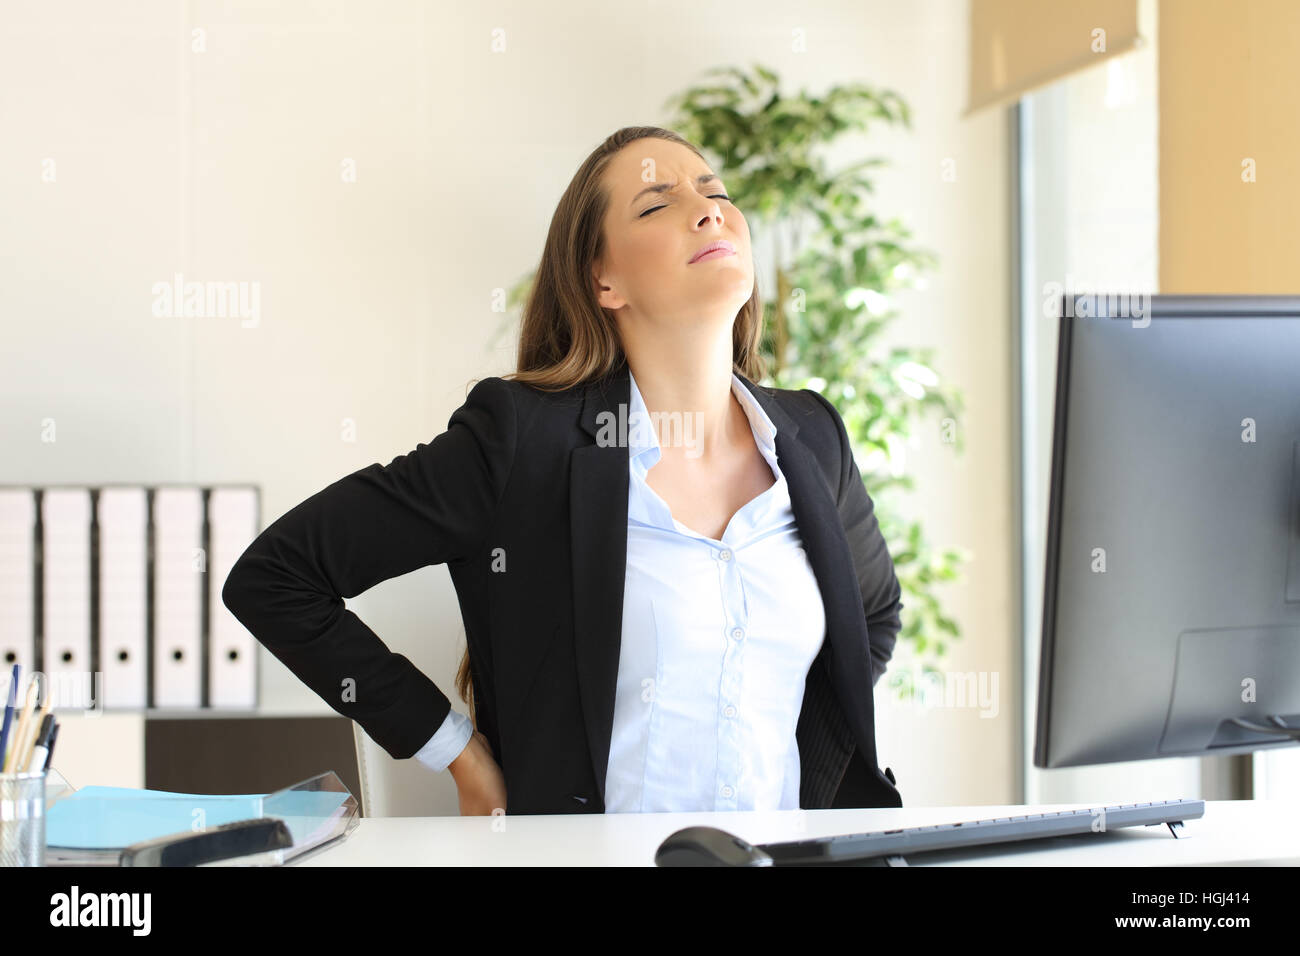 Unhappy businesswoman suffering back ache sitting on an uncomfortable seat at work indoors in her office - Stock Image